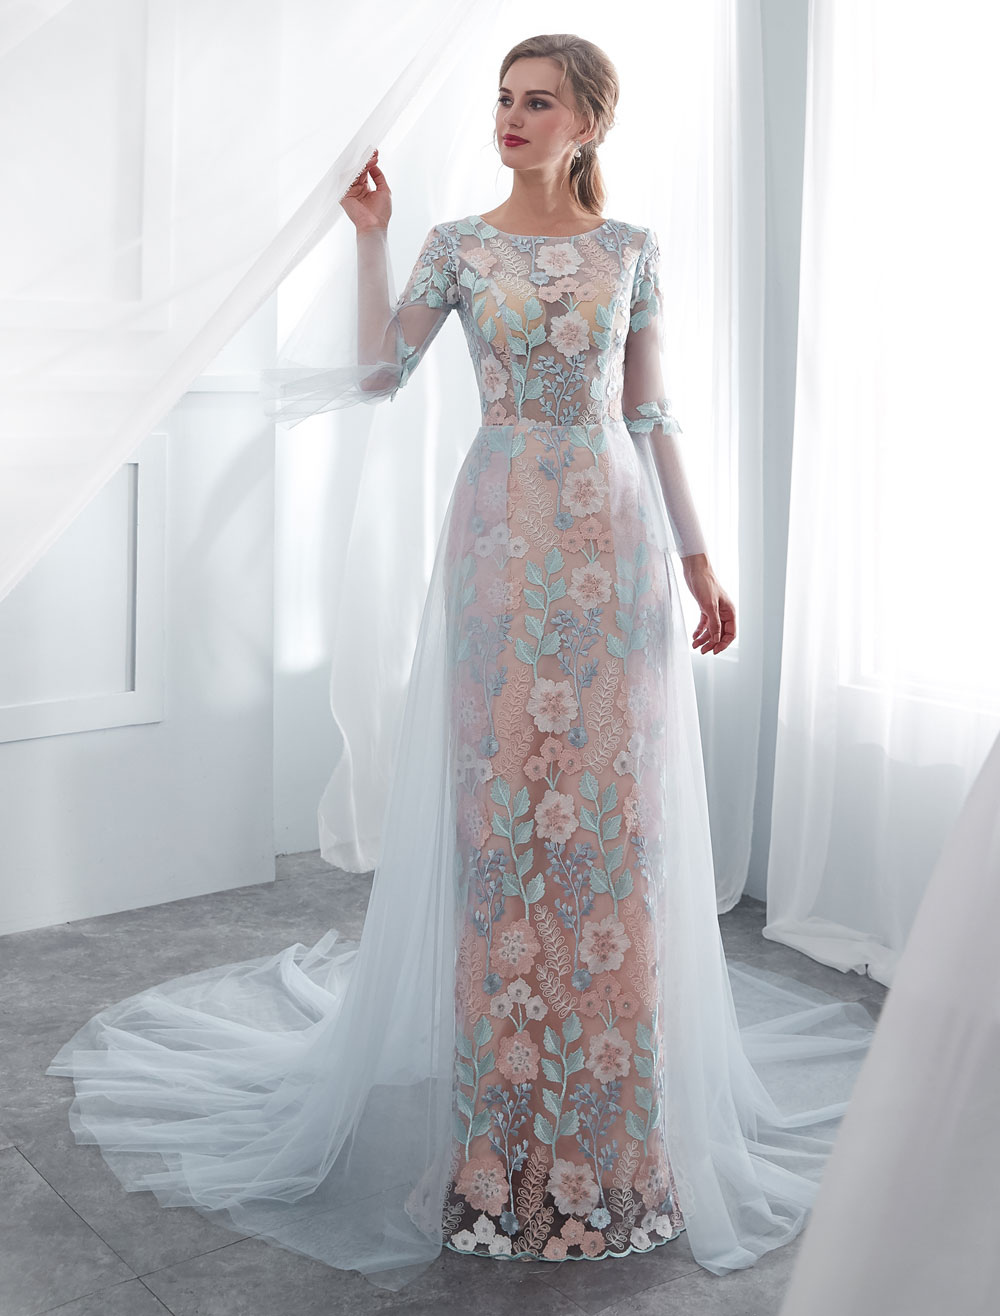 6b229c3b916 Colored Wedding Dresses Baby Blue Lace Long Sleeve Bridal Dress With Train  - Milanoo.com